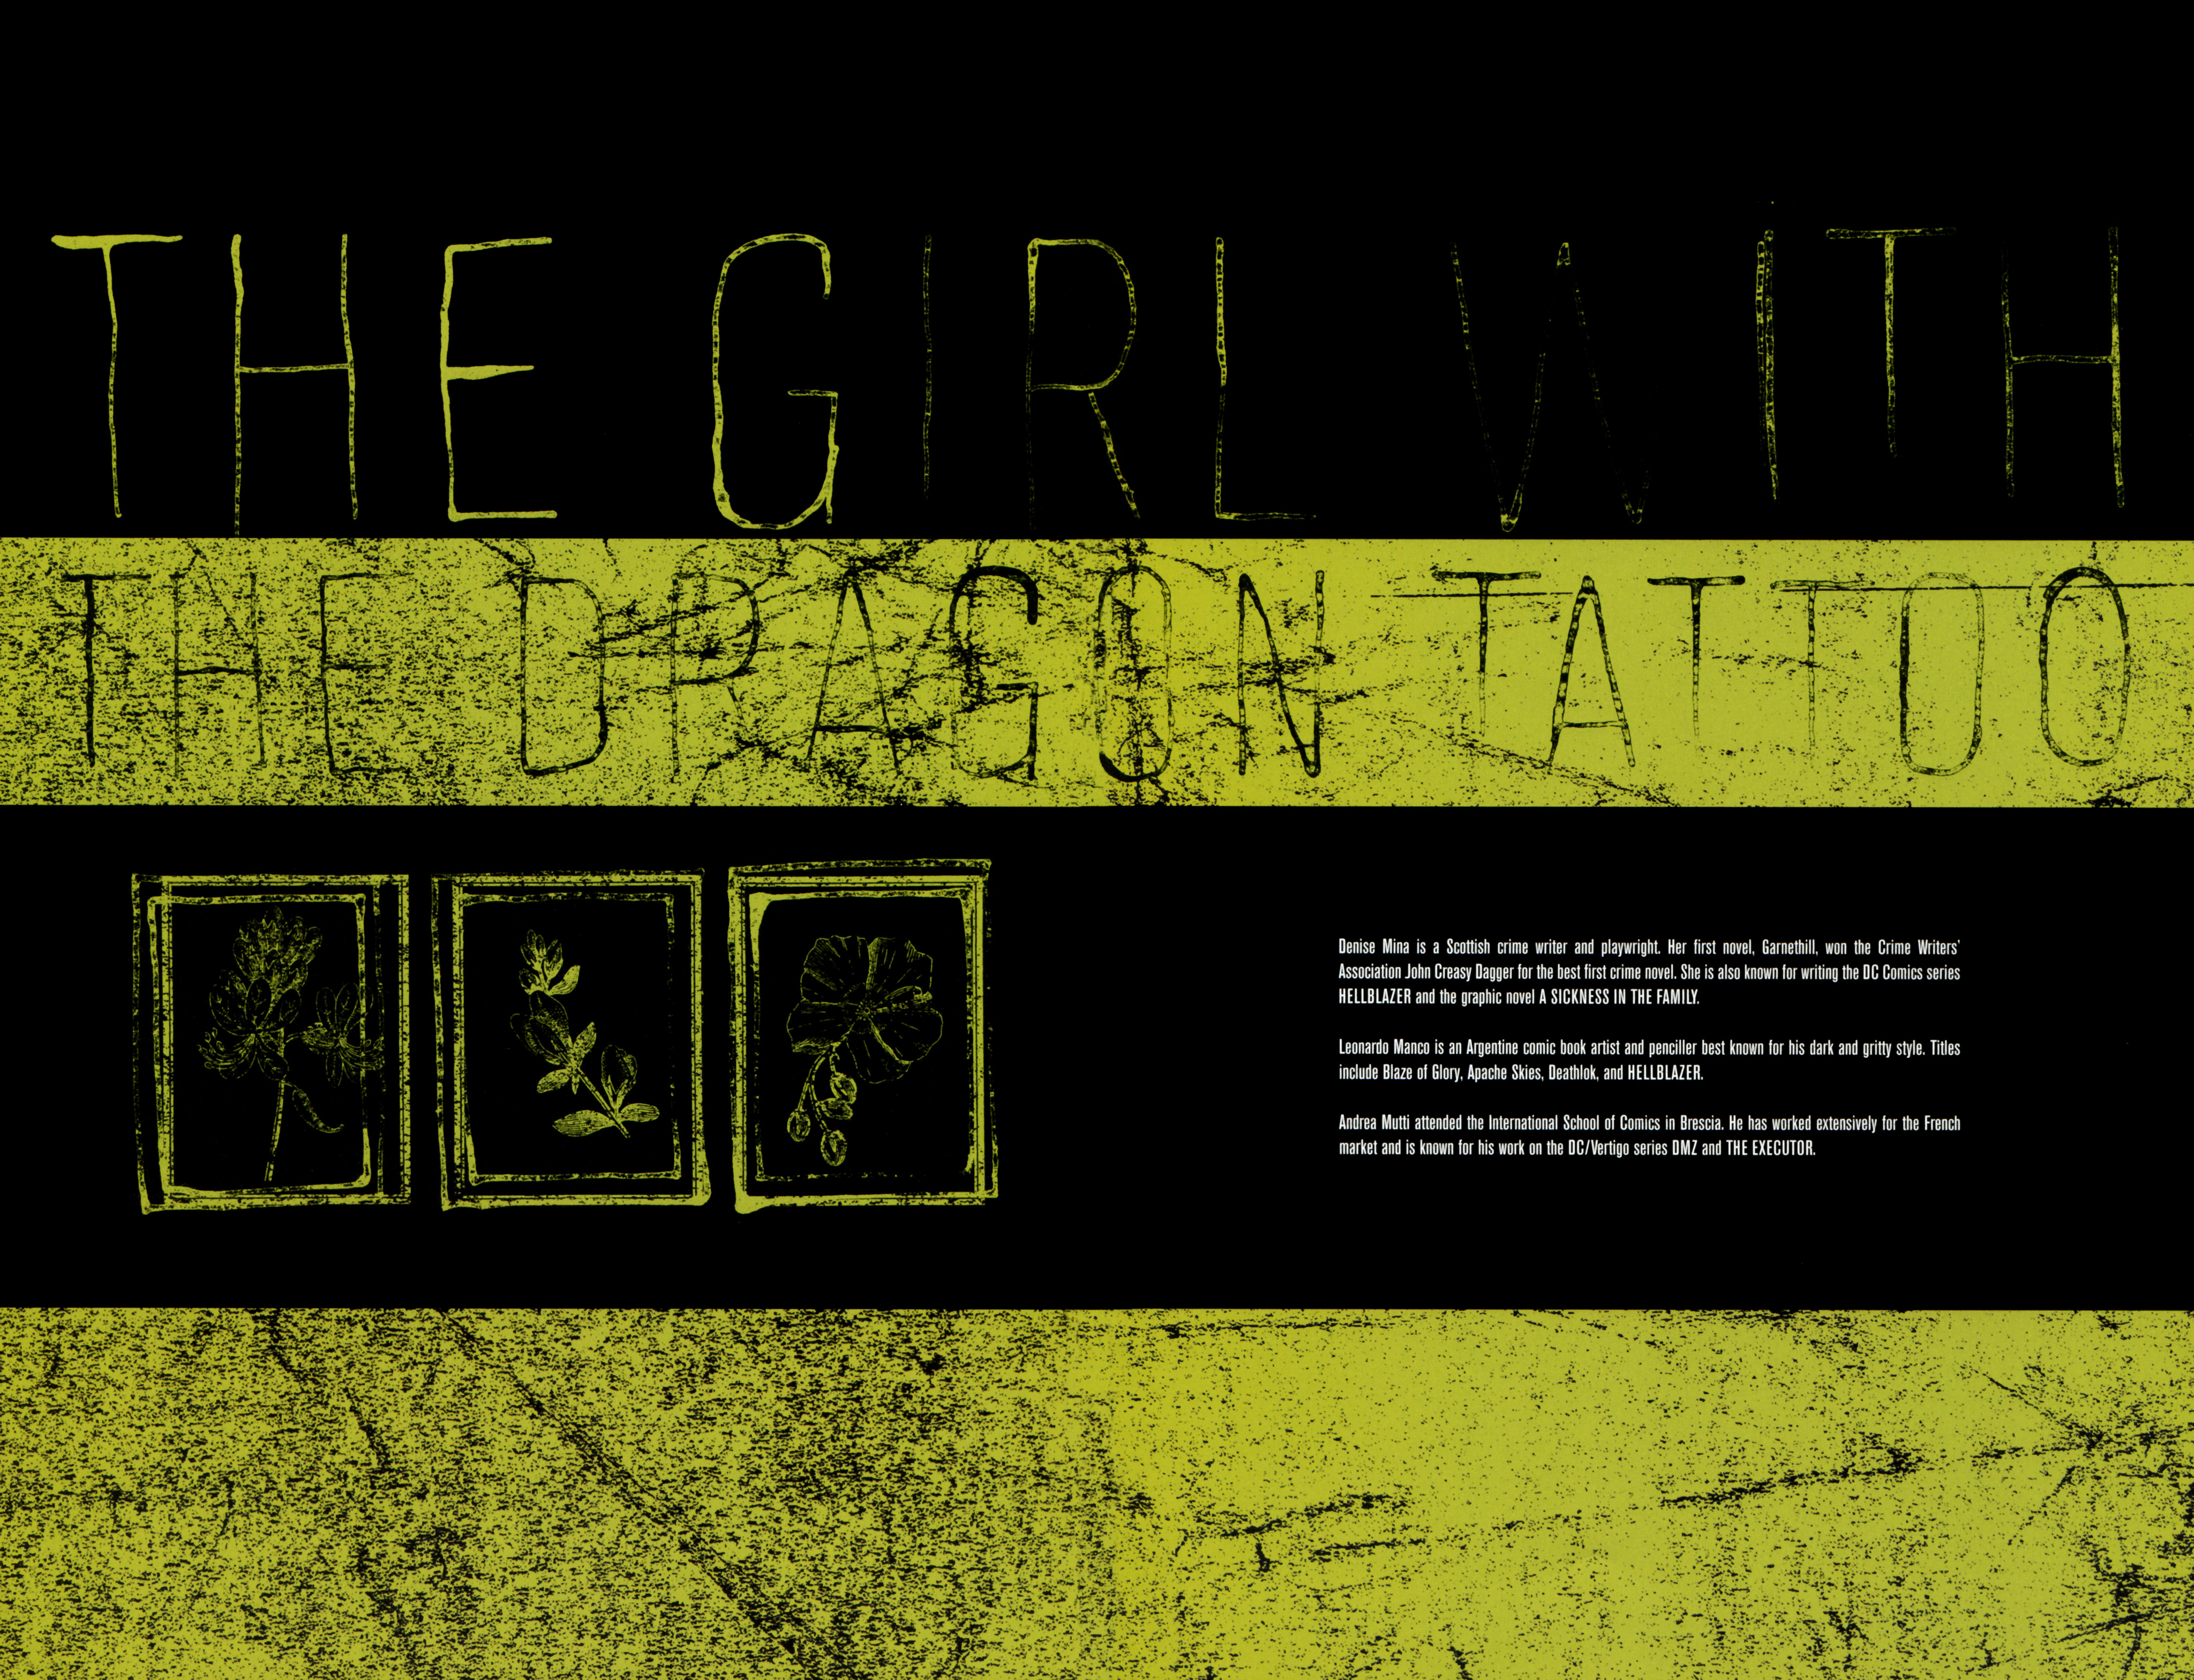 Read online The Girl With the Dragon Tattoo comic -  Issue # TPB 1 - 151